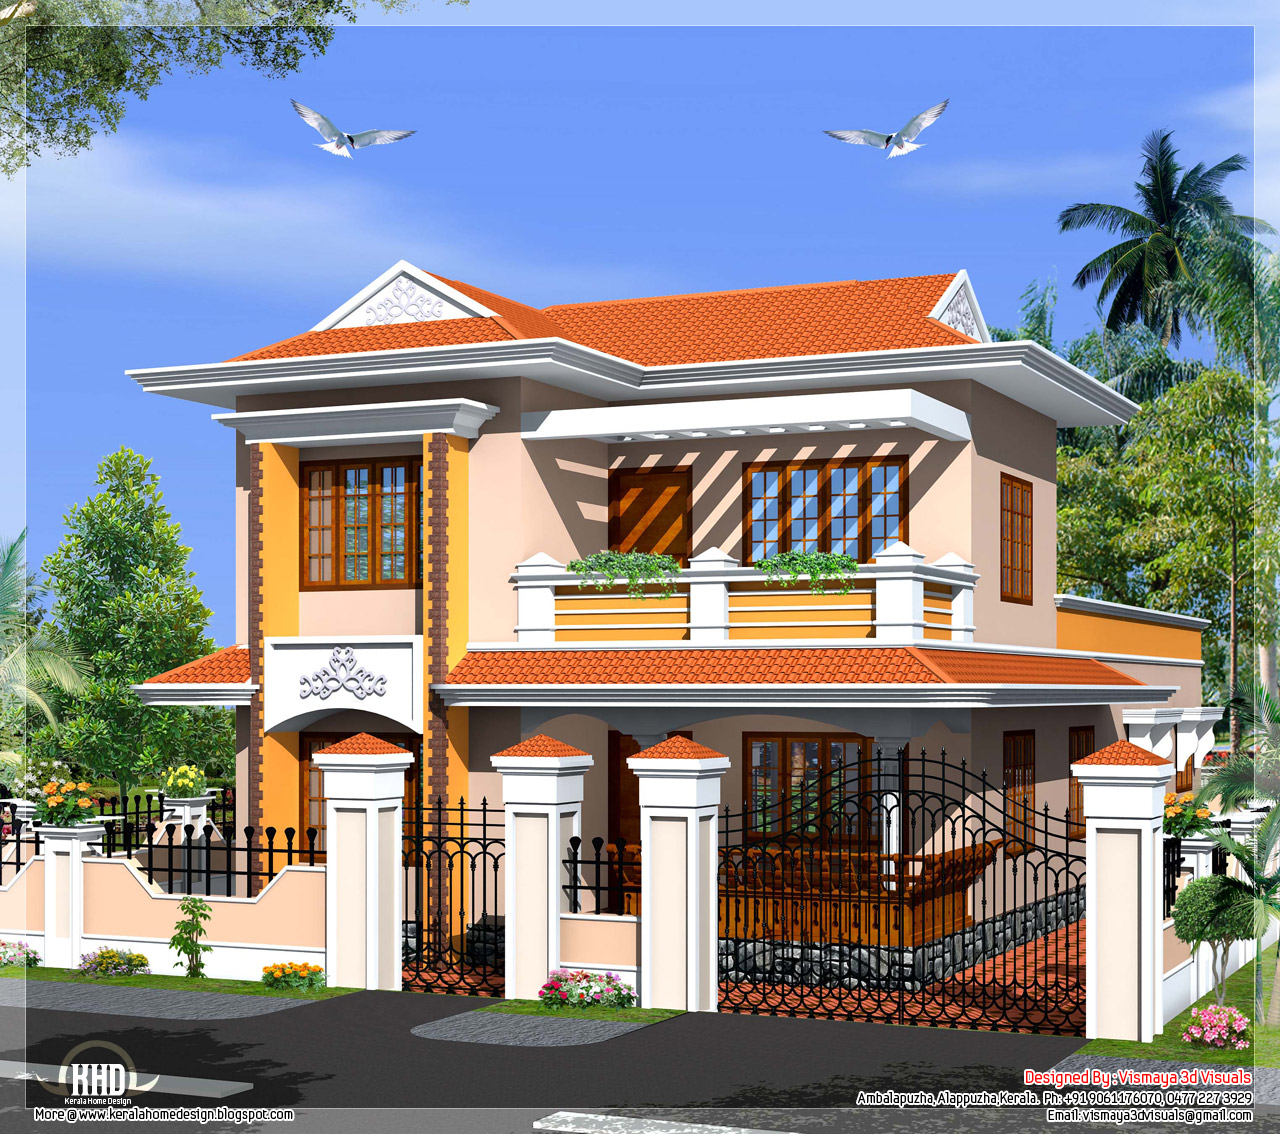 Kerala model villa in 2110 in square feet house design plans for New home models and plans